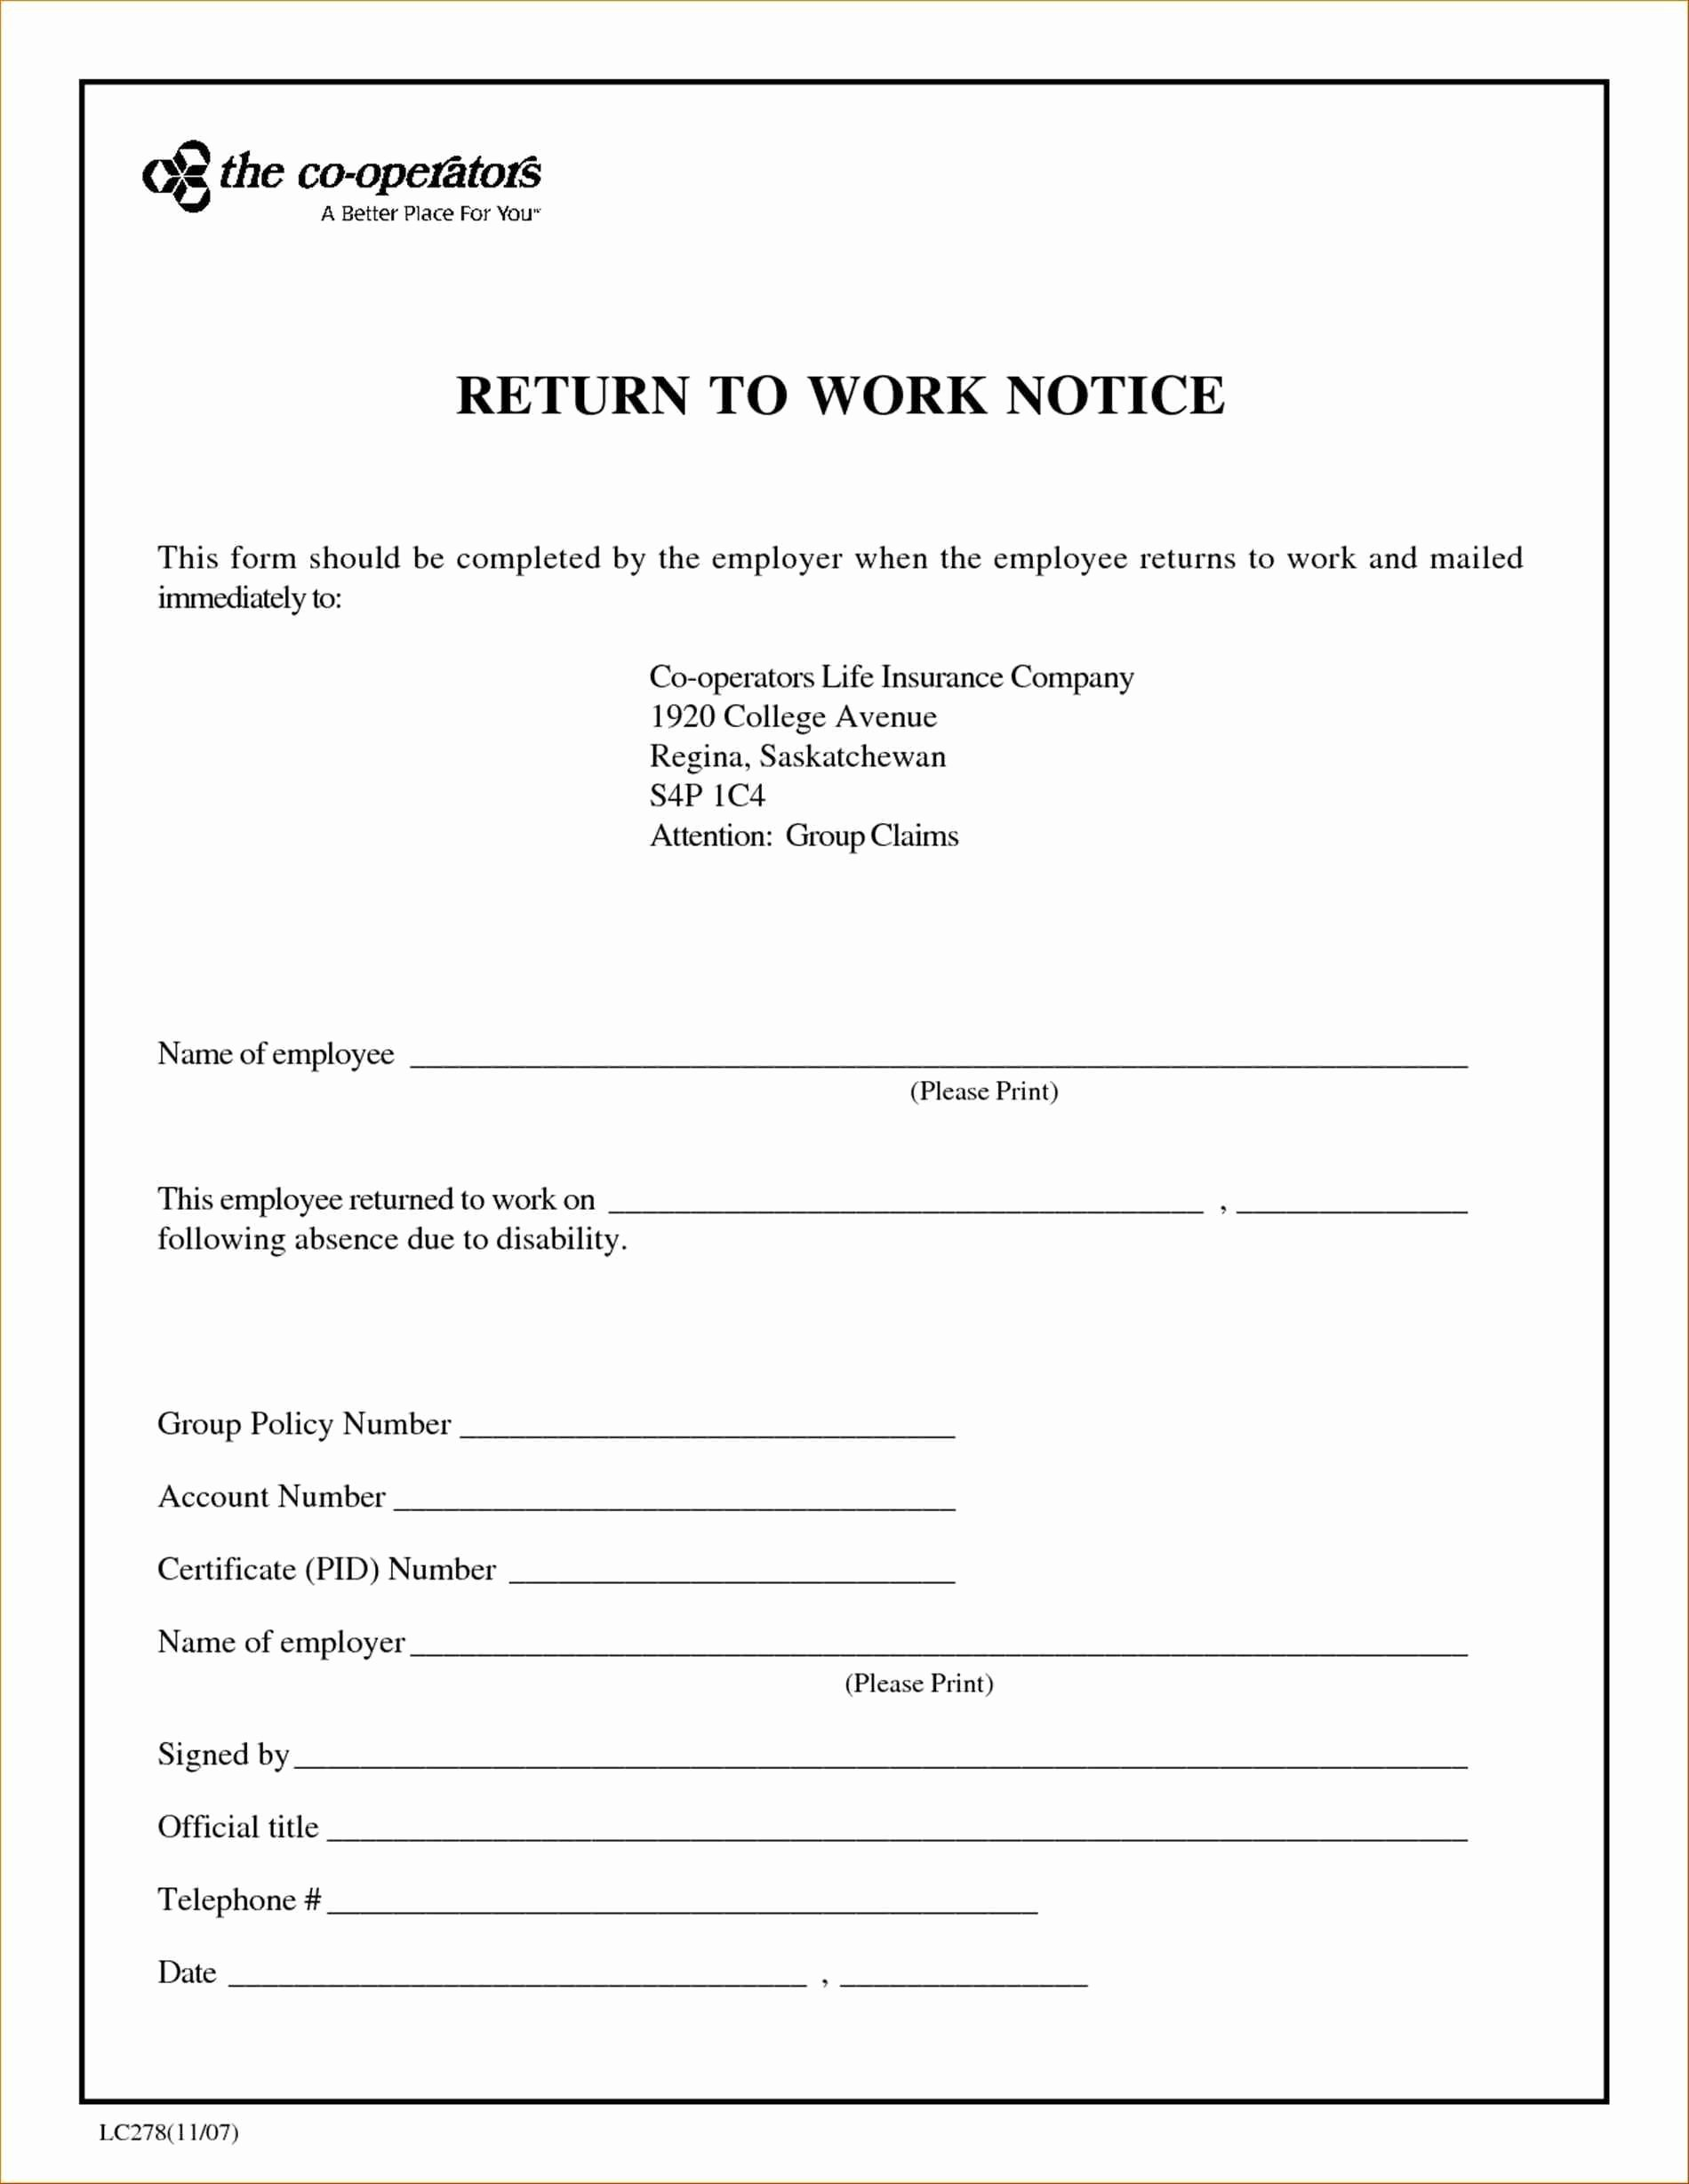 Fake Doctors Note for School Unique Fake Doctors Note for Work or School Pdf